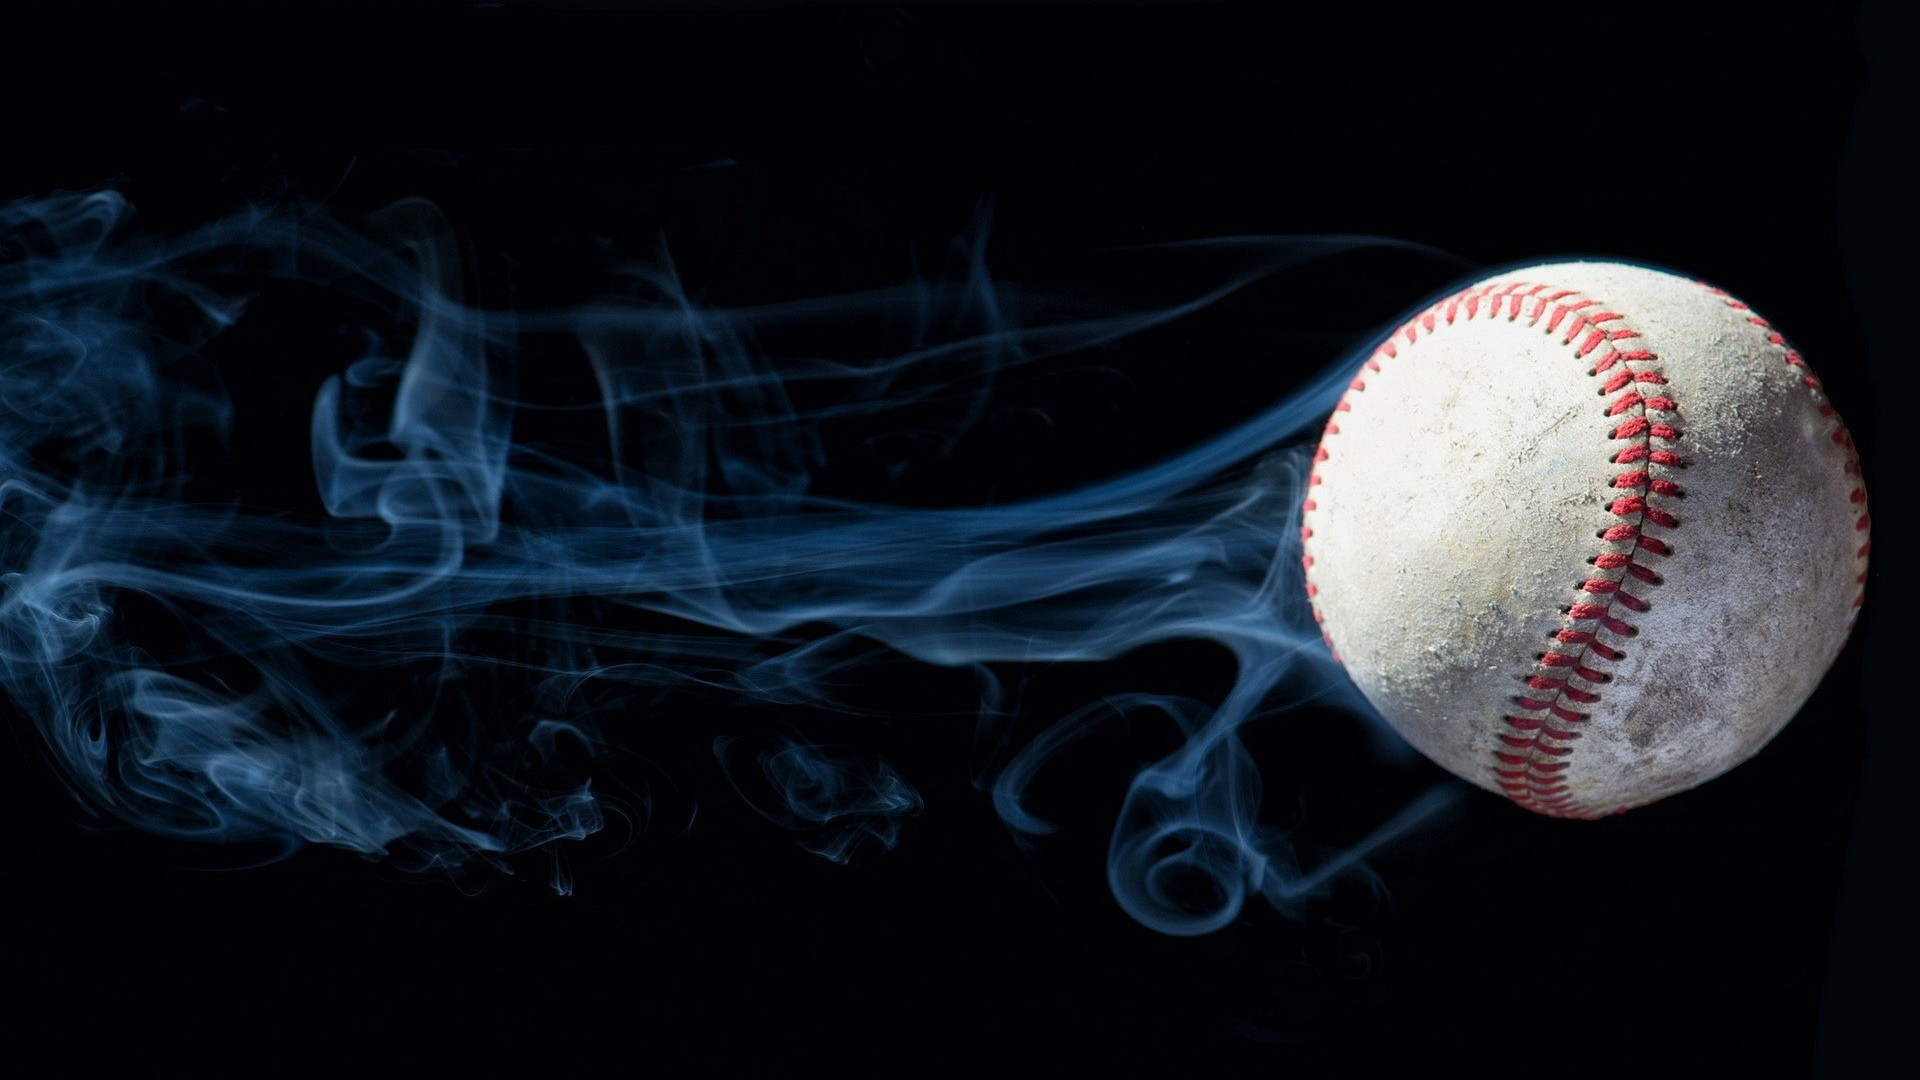 1920x1080 Great baseball wallpaper: